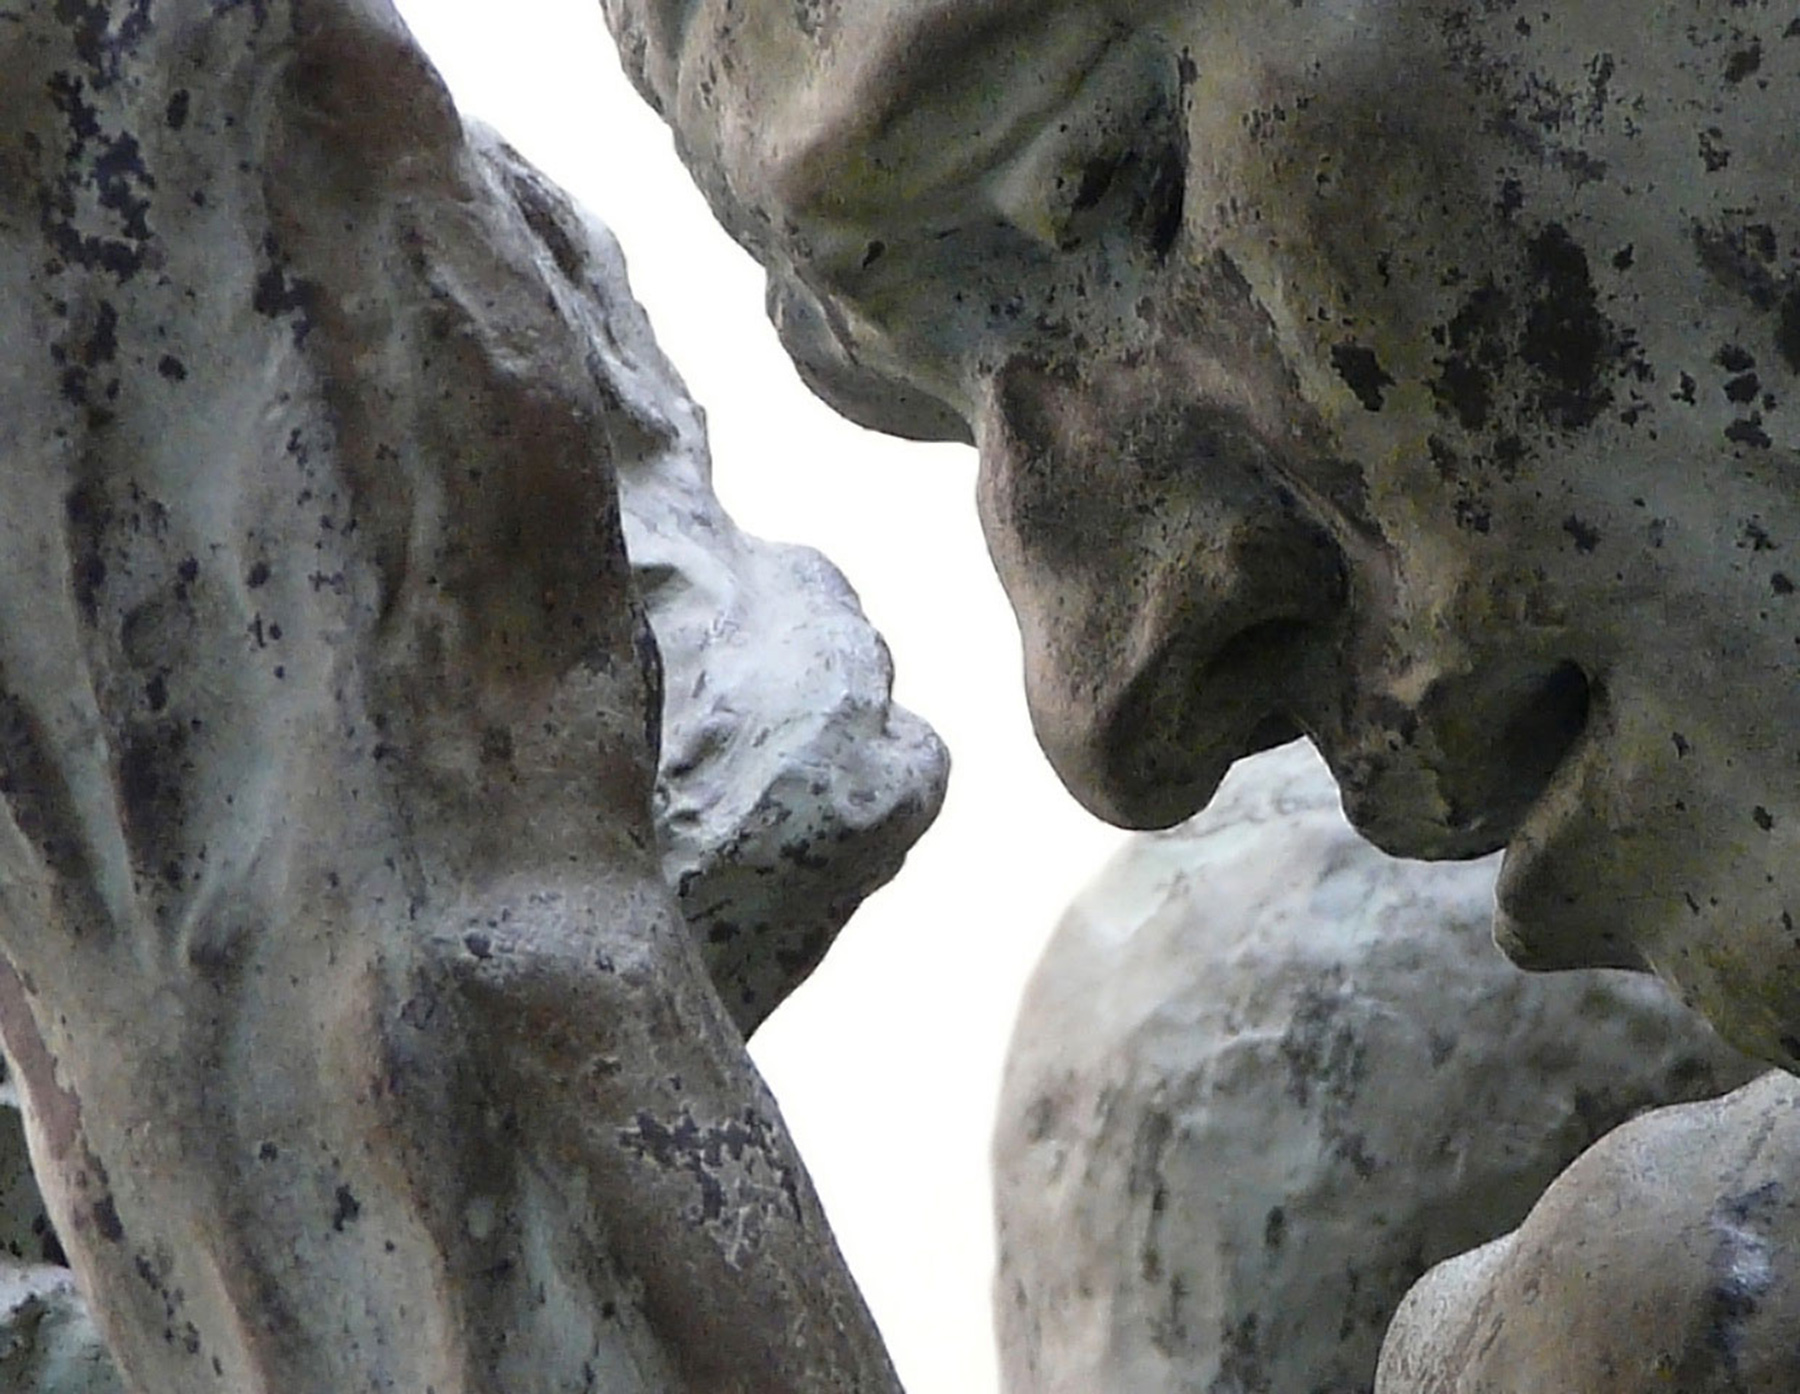 Auguste Rodin, detail from The Burghers of Calais. Photo by Tim Nighswander/IMAGING4ART